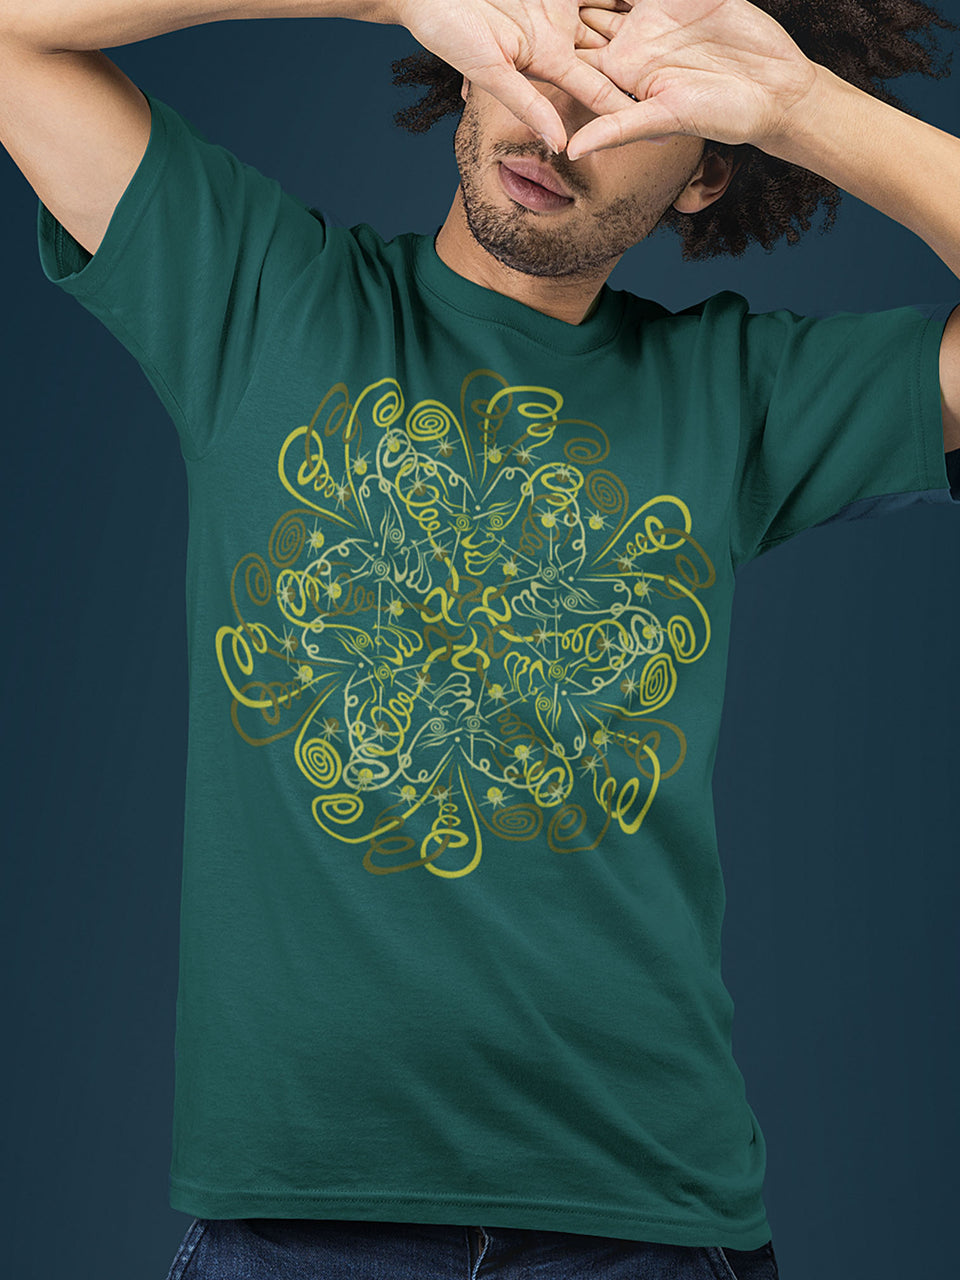 DyMiTry Made To Order Men T-Shirt - Bottle Green